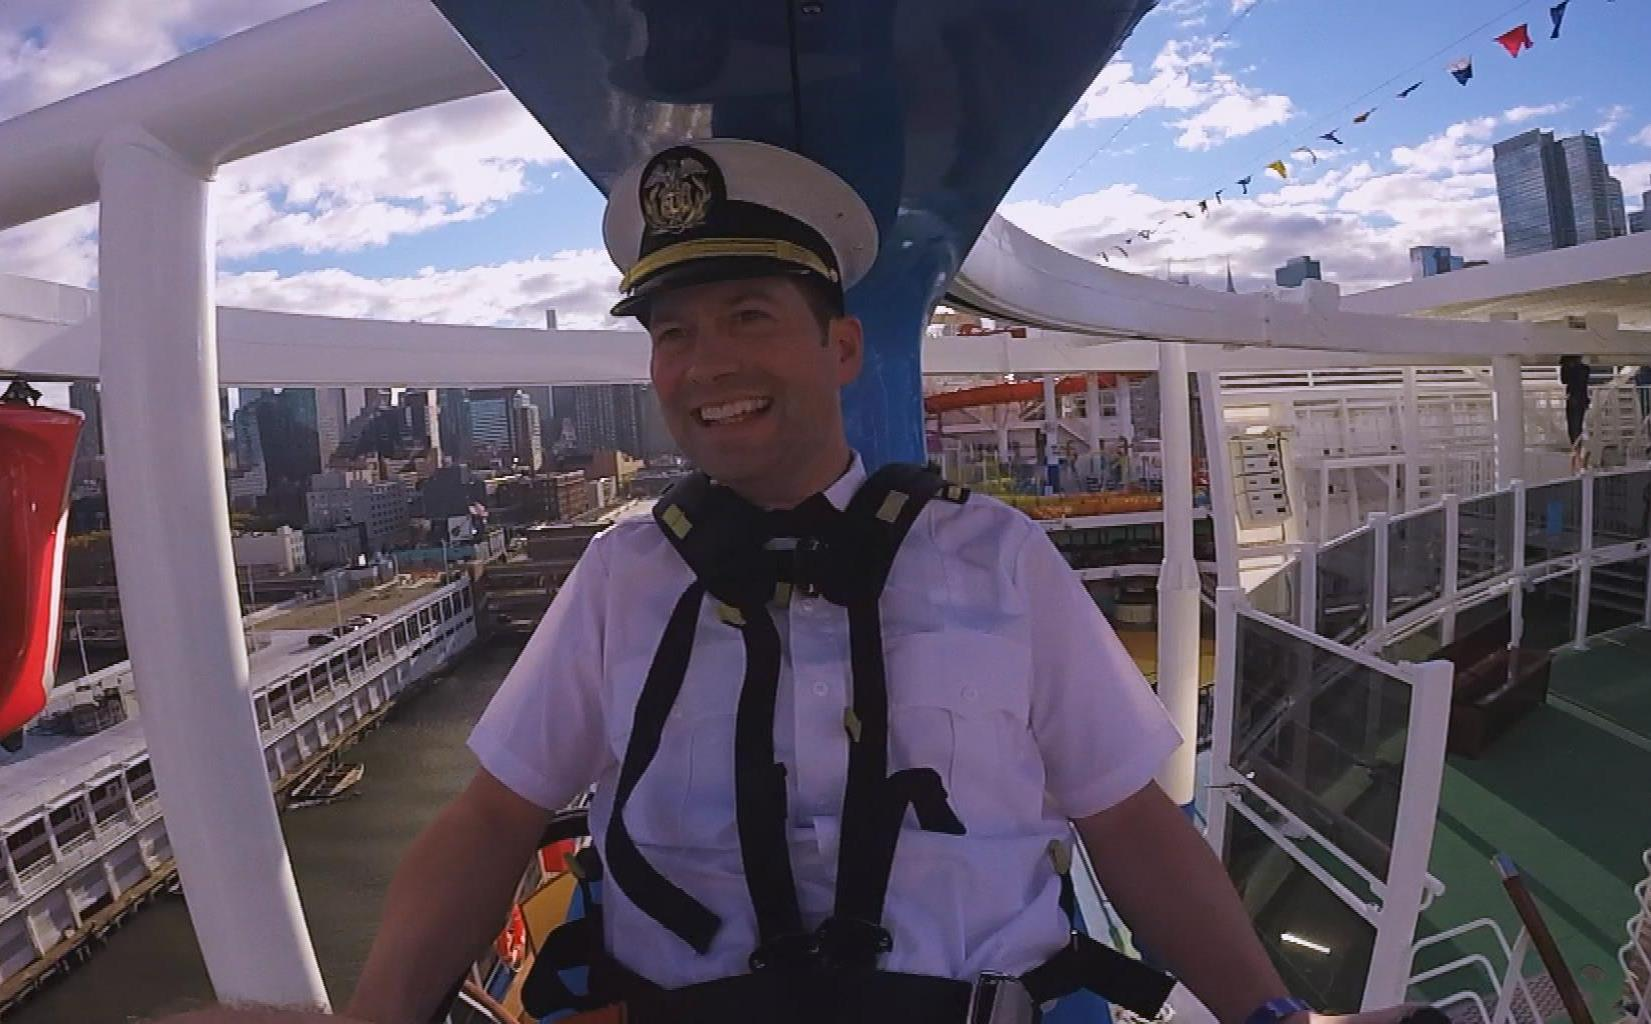 A Battle in the Sky! Fun Video Shows Andy Zenor of The Ellen DeGeneres Show Racing Country  Music Superstar on SkyRide Aerial Attraction aboard New Carnival Vista  in New York